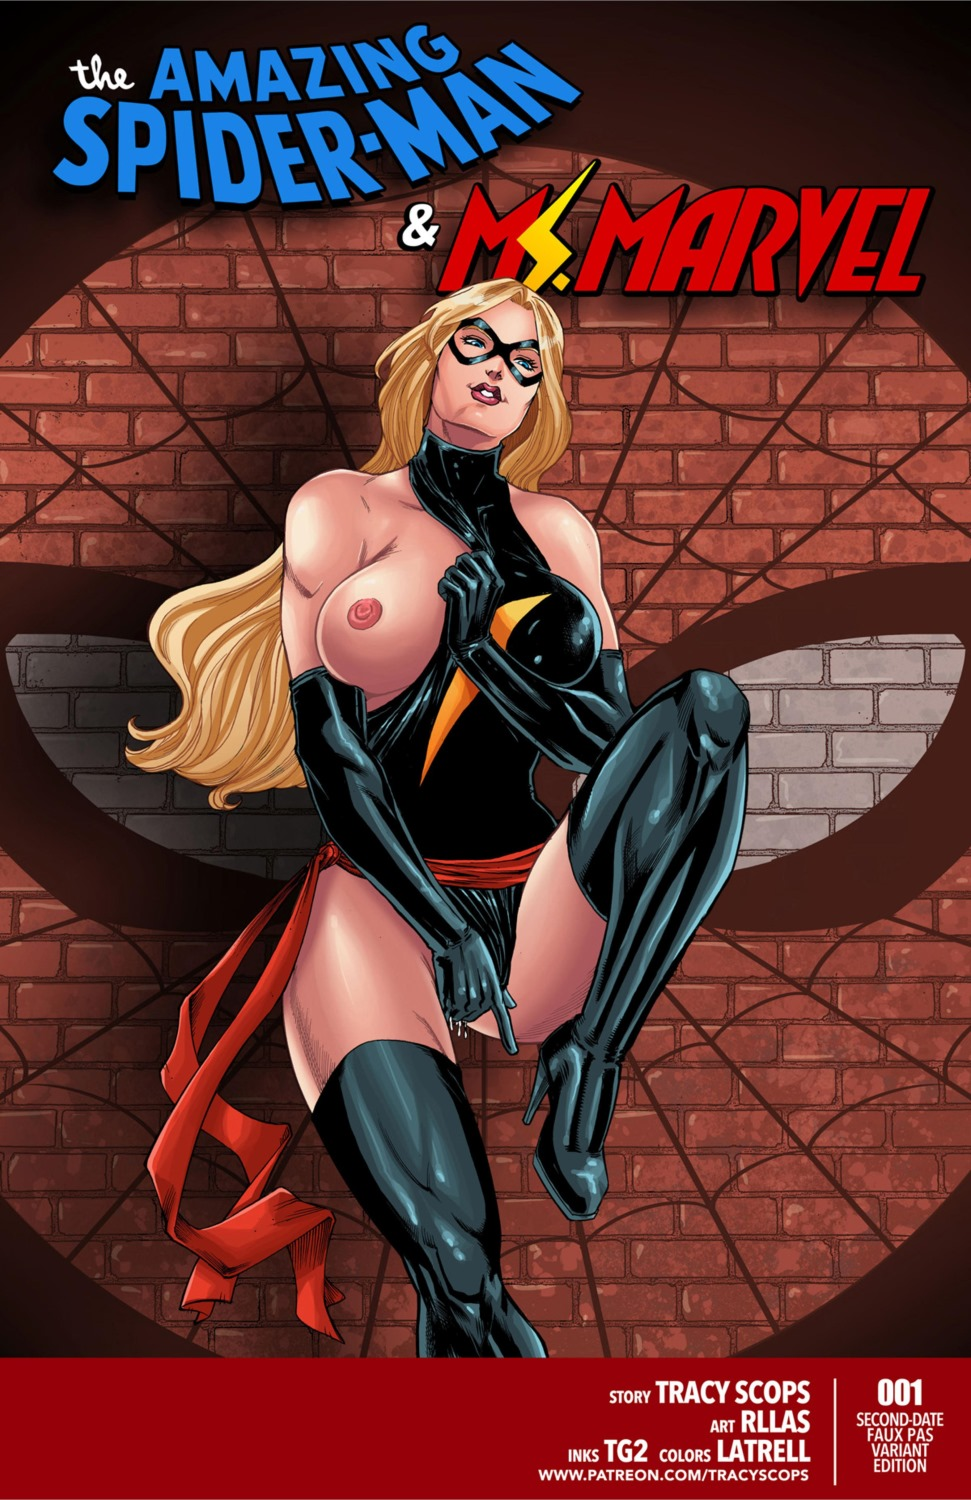 Spiderman & Ms. Marvel – Tracy Scops porn comics 8 muses